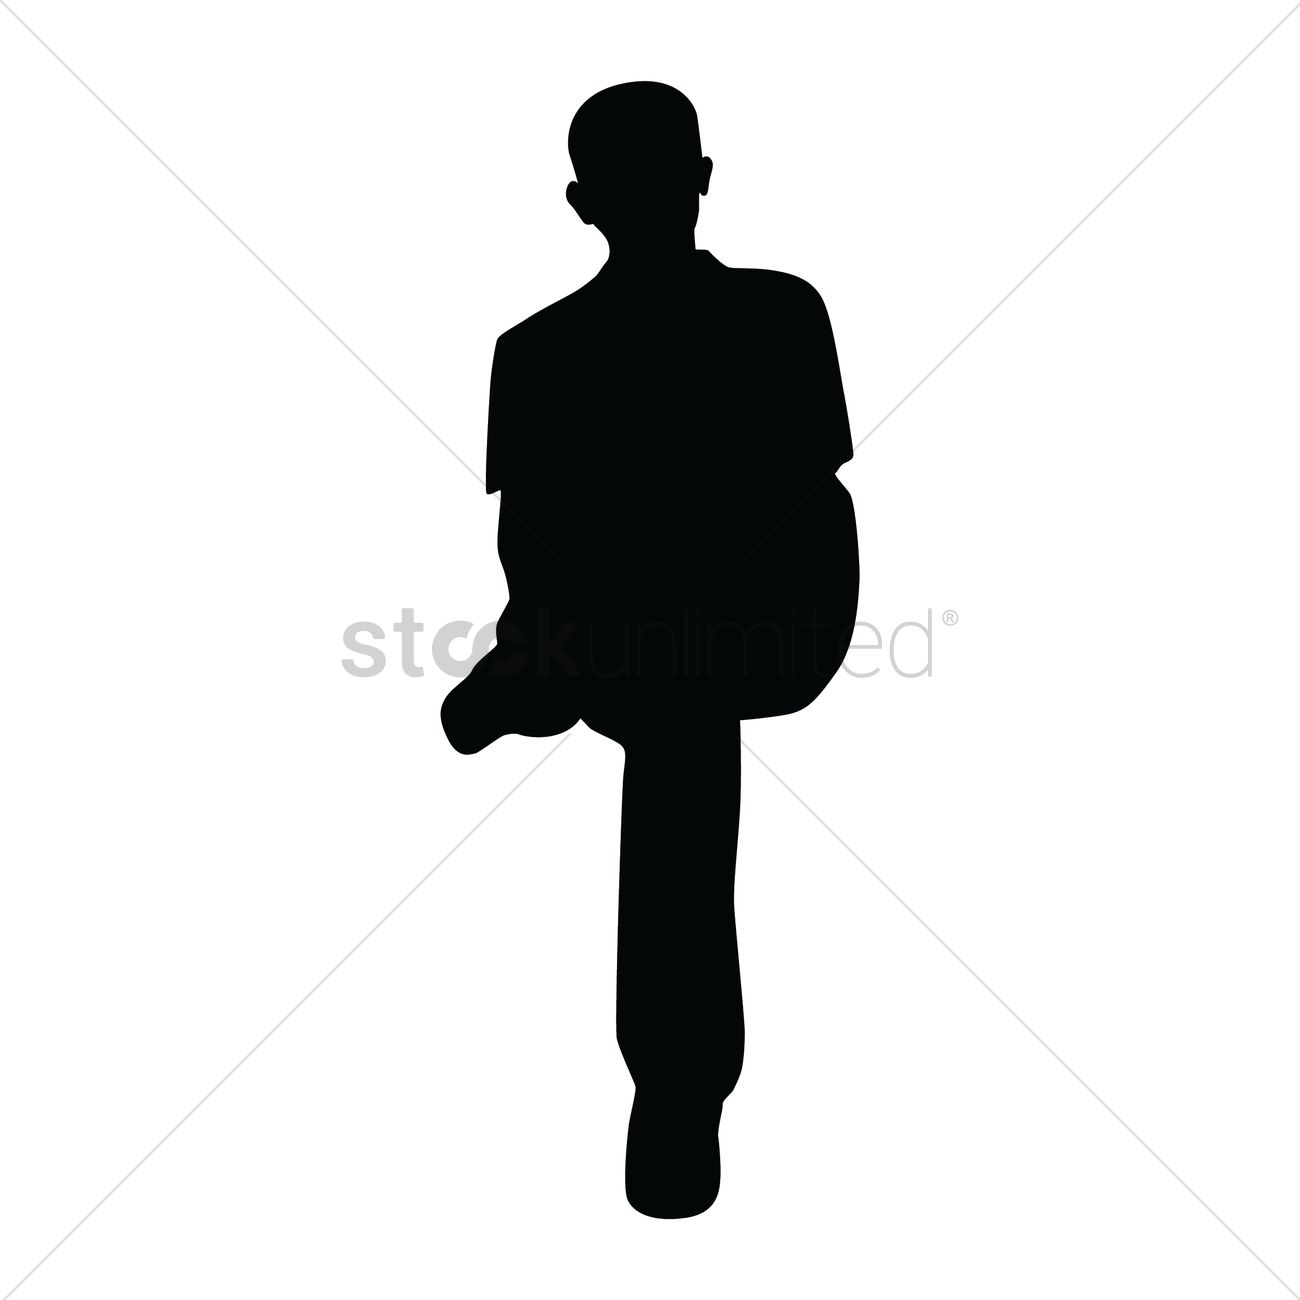 Silhouette Of Sitting Man Vector Image - 1447159 ...